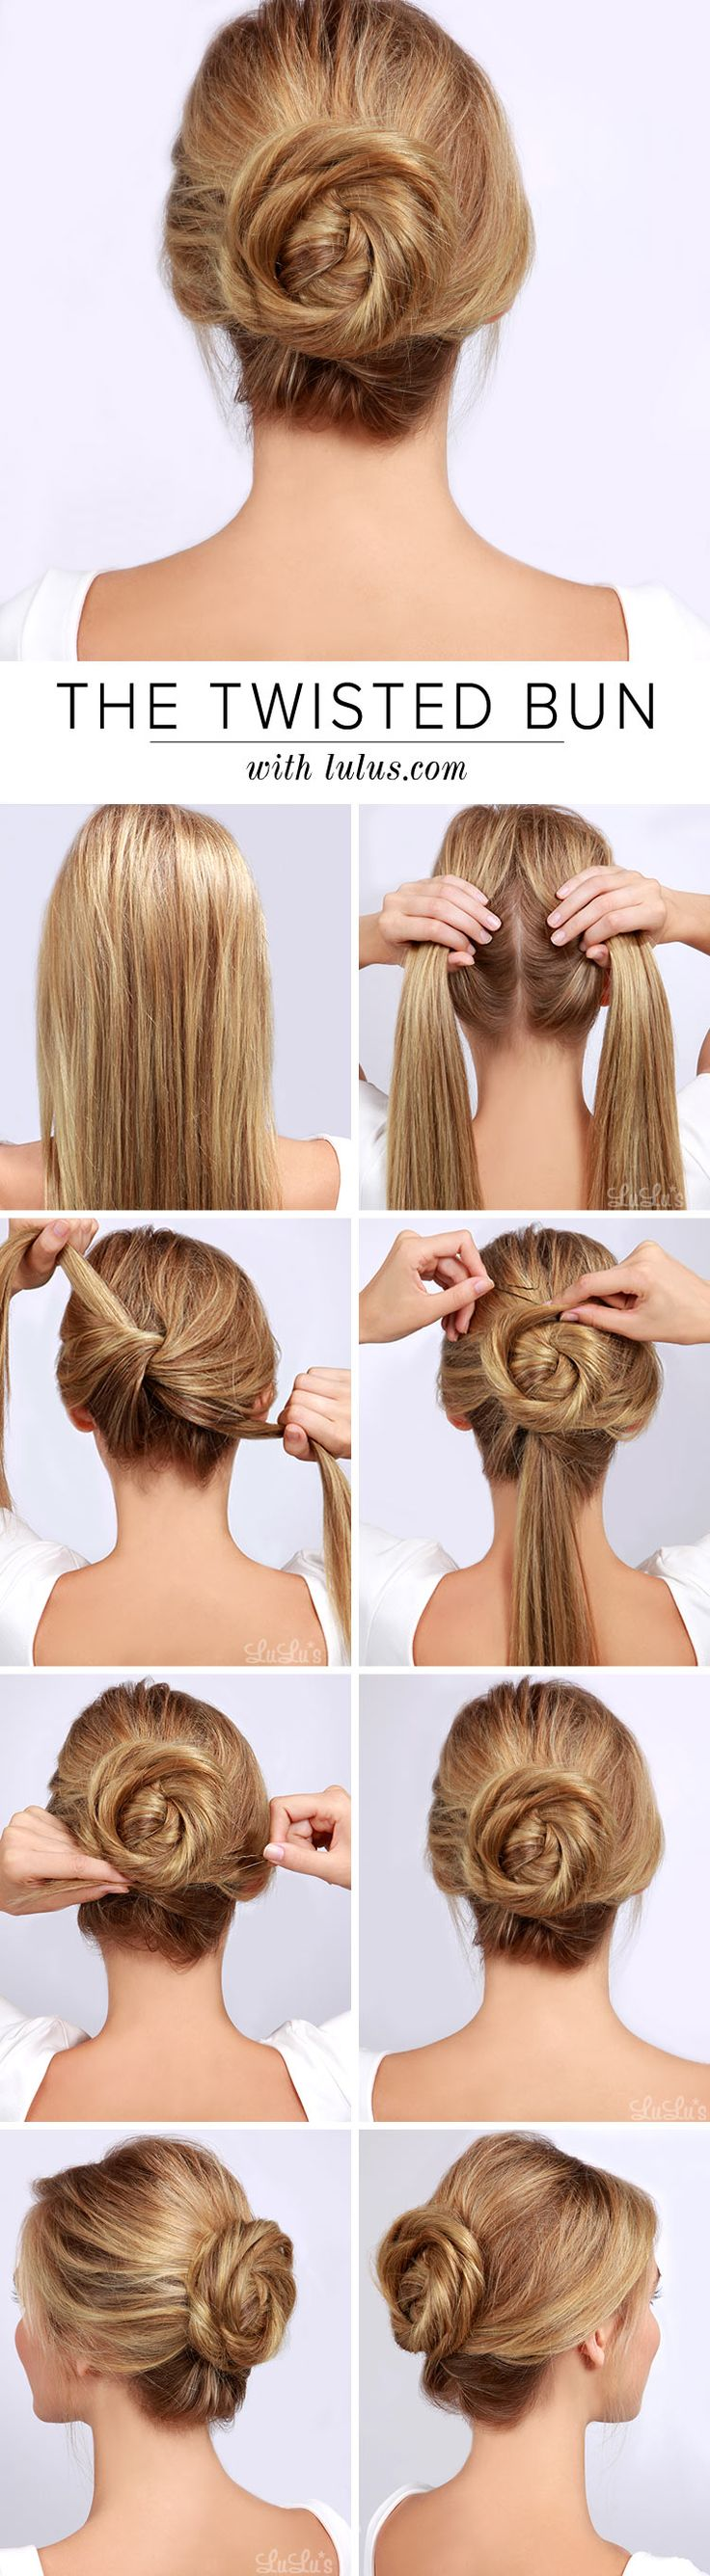 Our Twisted Bun Hair Tutorial